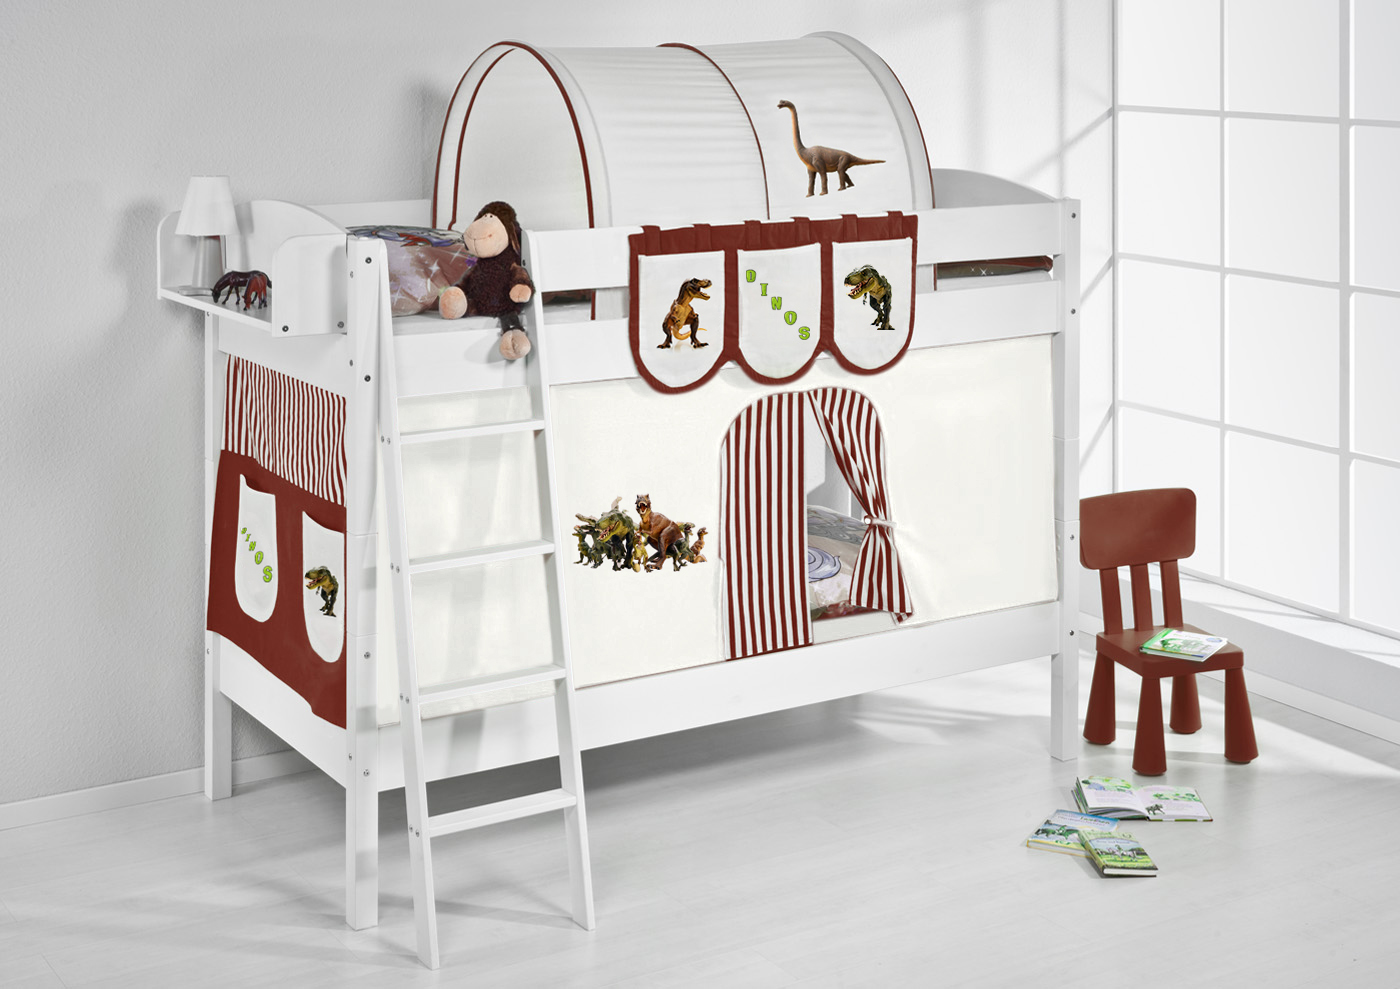 etagenbett hochbett kinder bett aus massiver kiefer ida. Black Bedroom Furniture Sets. Home Design Ideas